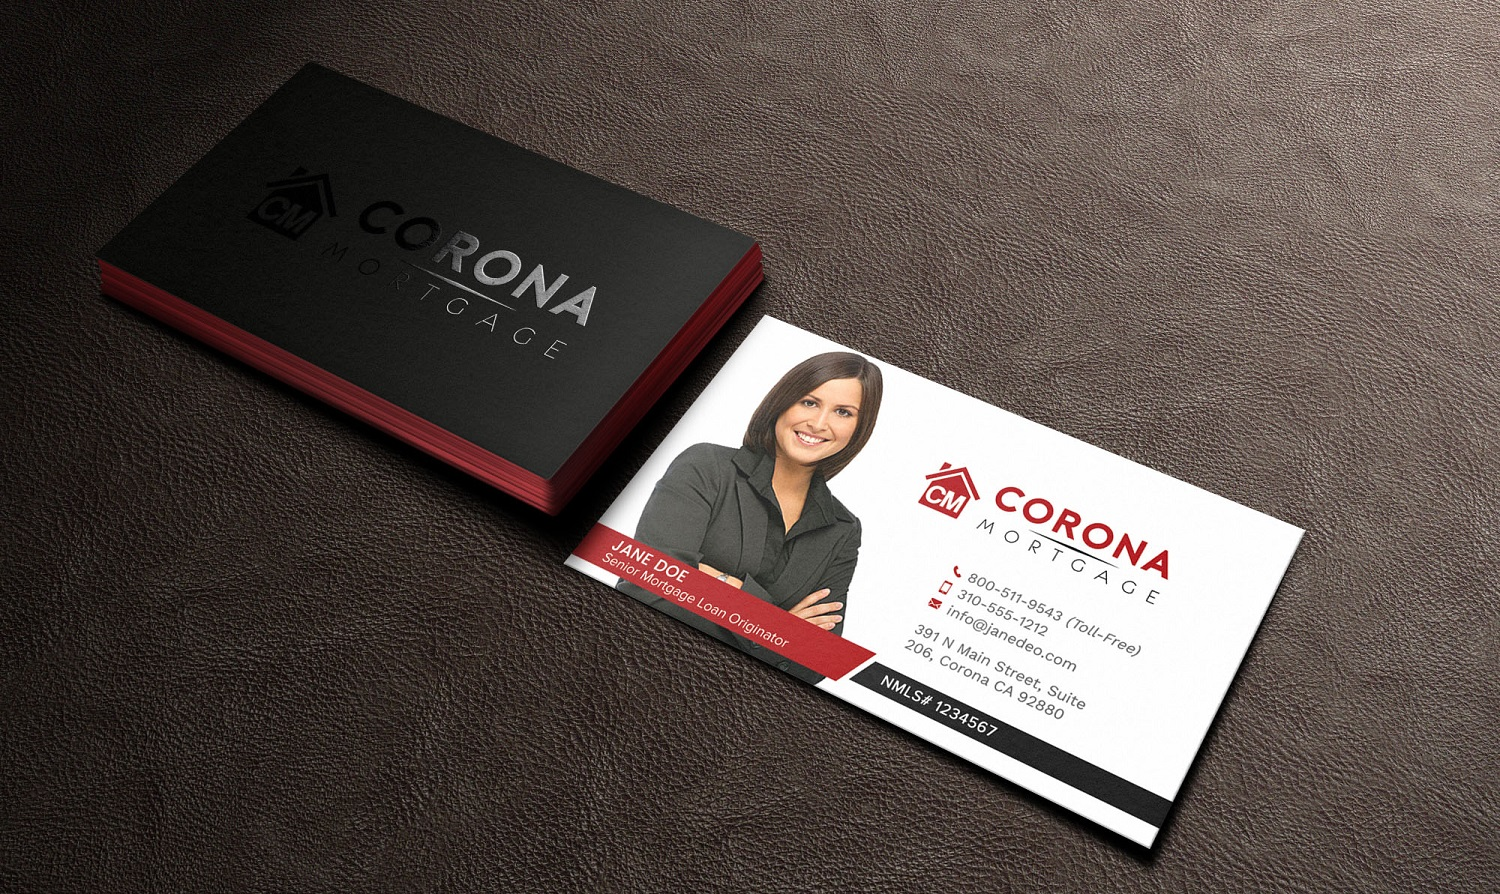 Modern upmarket mortgage lender business card design for a company business card design by avanger000 for this project design 17319990 reheart Choice Image